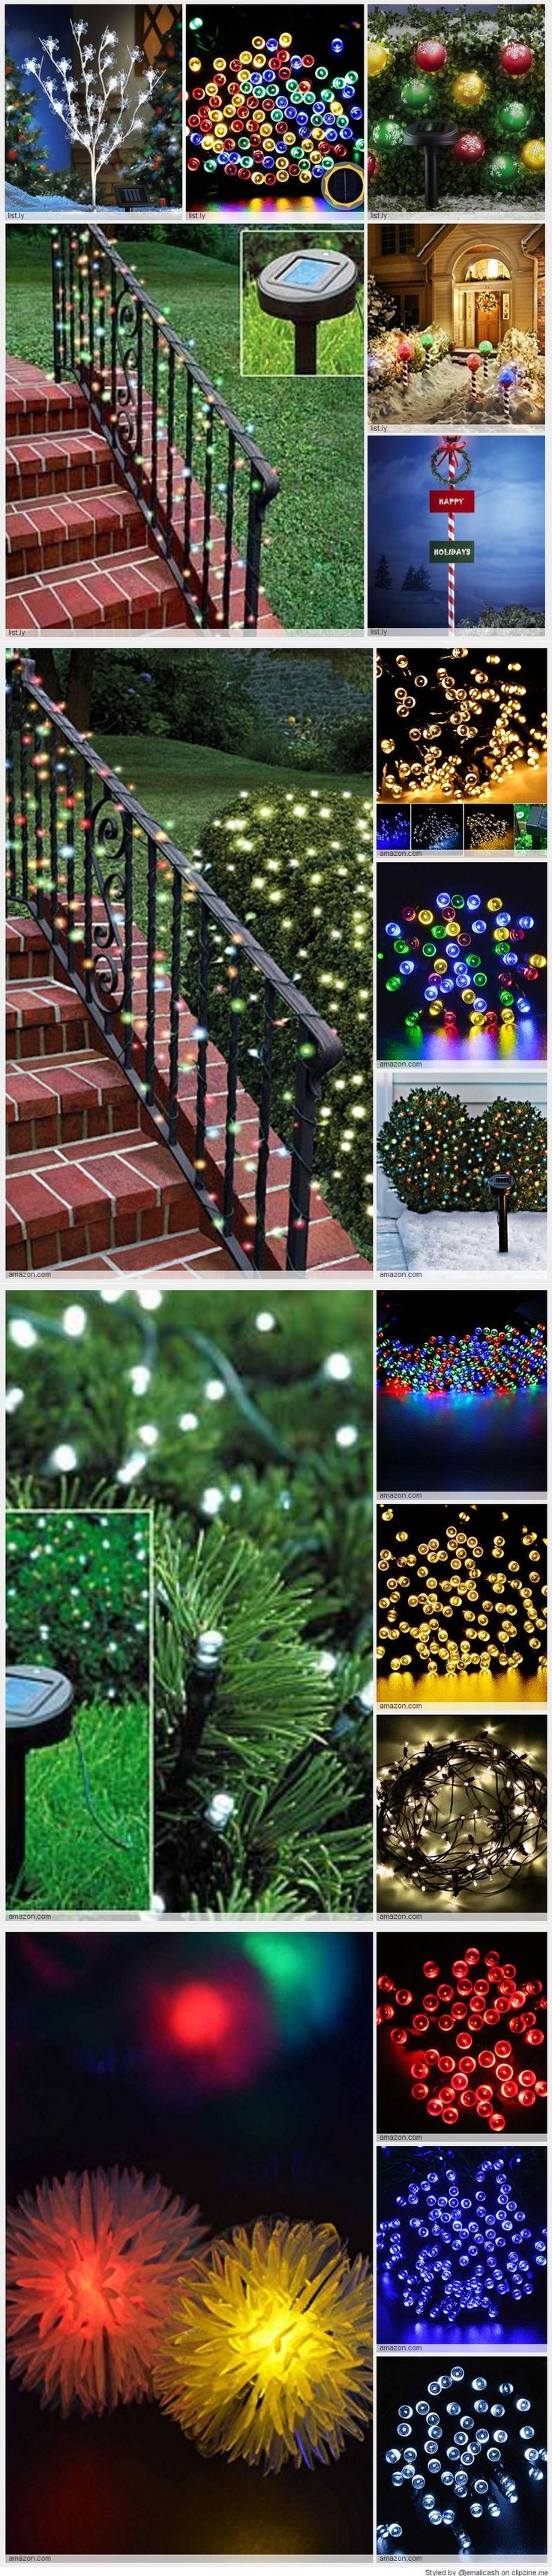 Cheap Solar Powered Christmas Decorations - Are you looking for the best cheap solar powered Christmas lights? Then check out the videos that we found that show you how to use your solar powered Christmas lights to really brighten up your outdoor decorations.